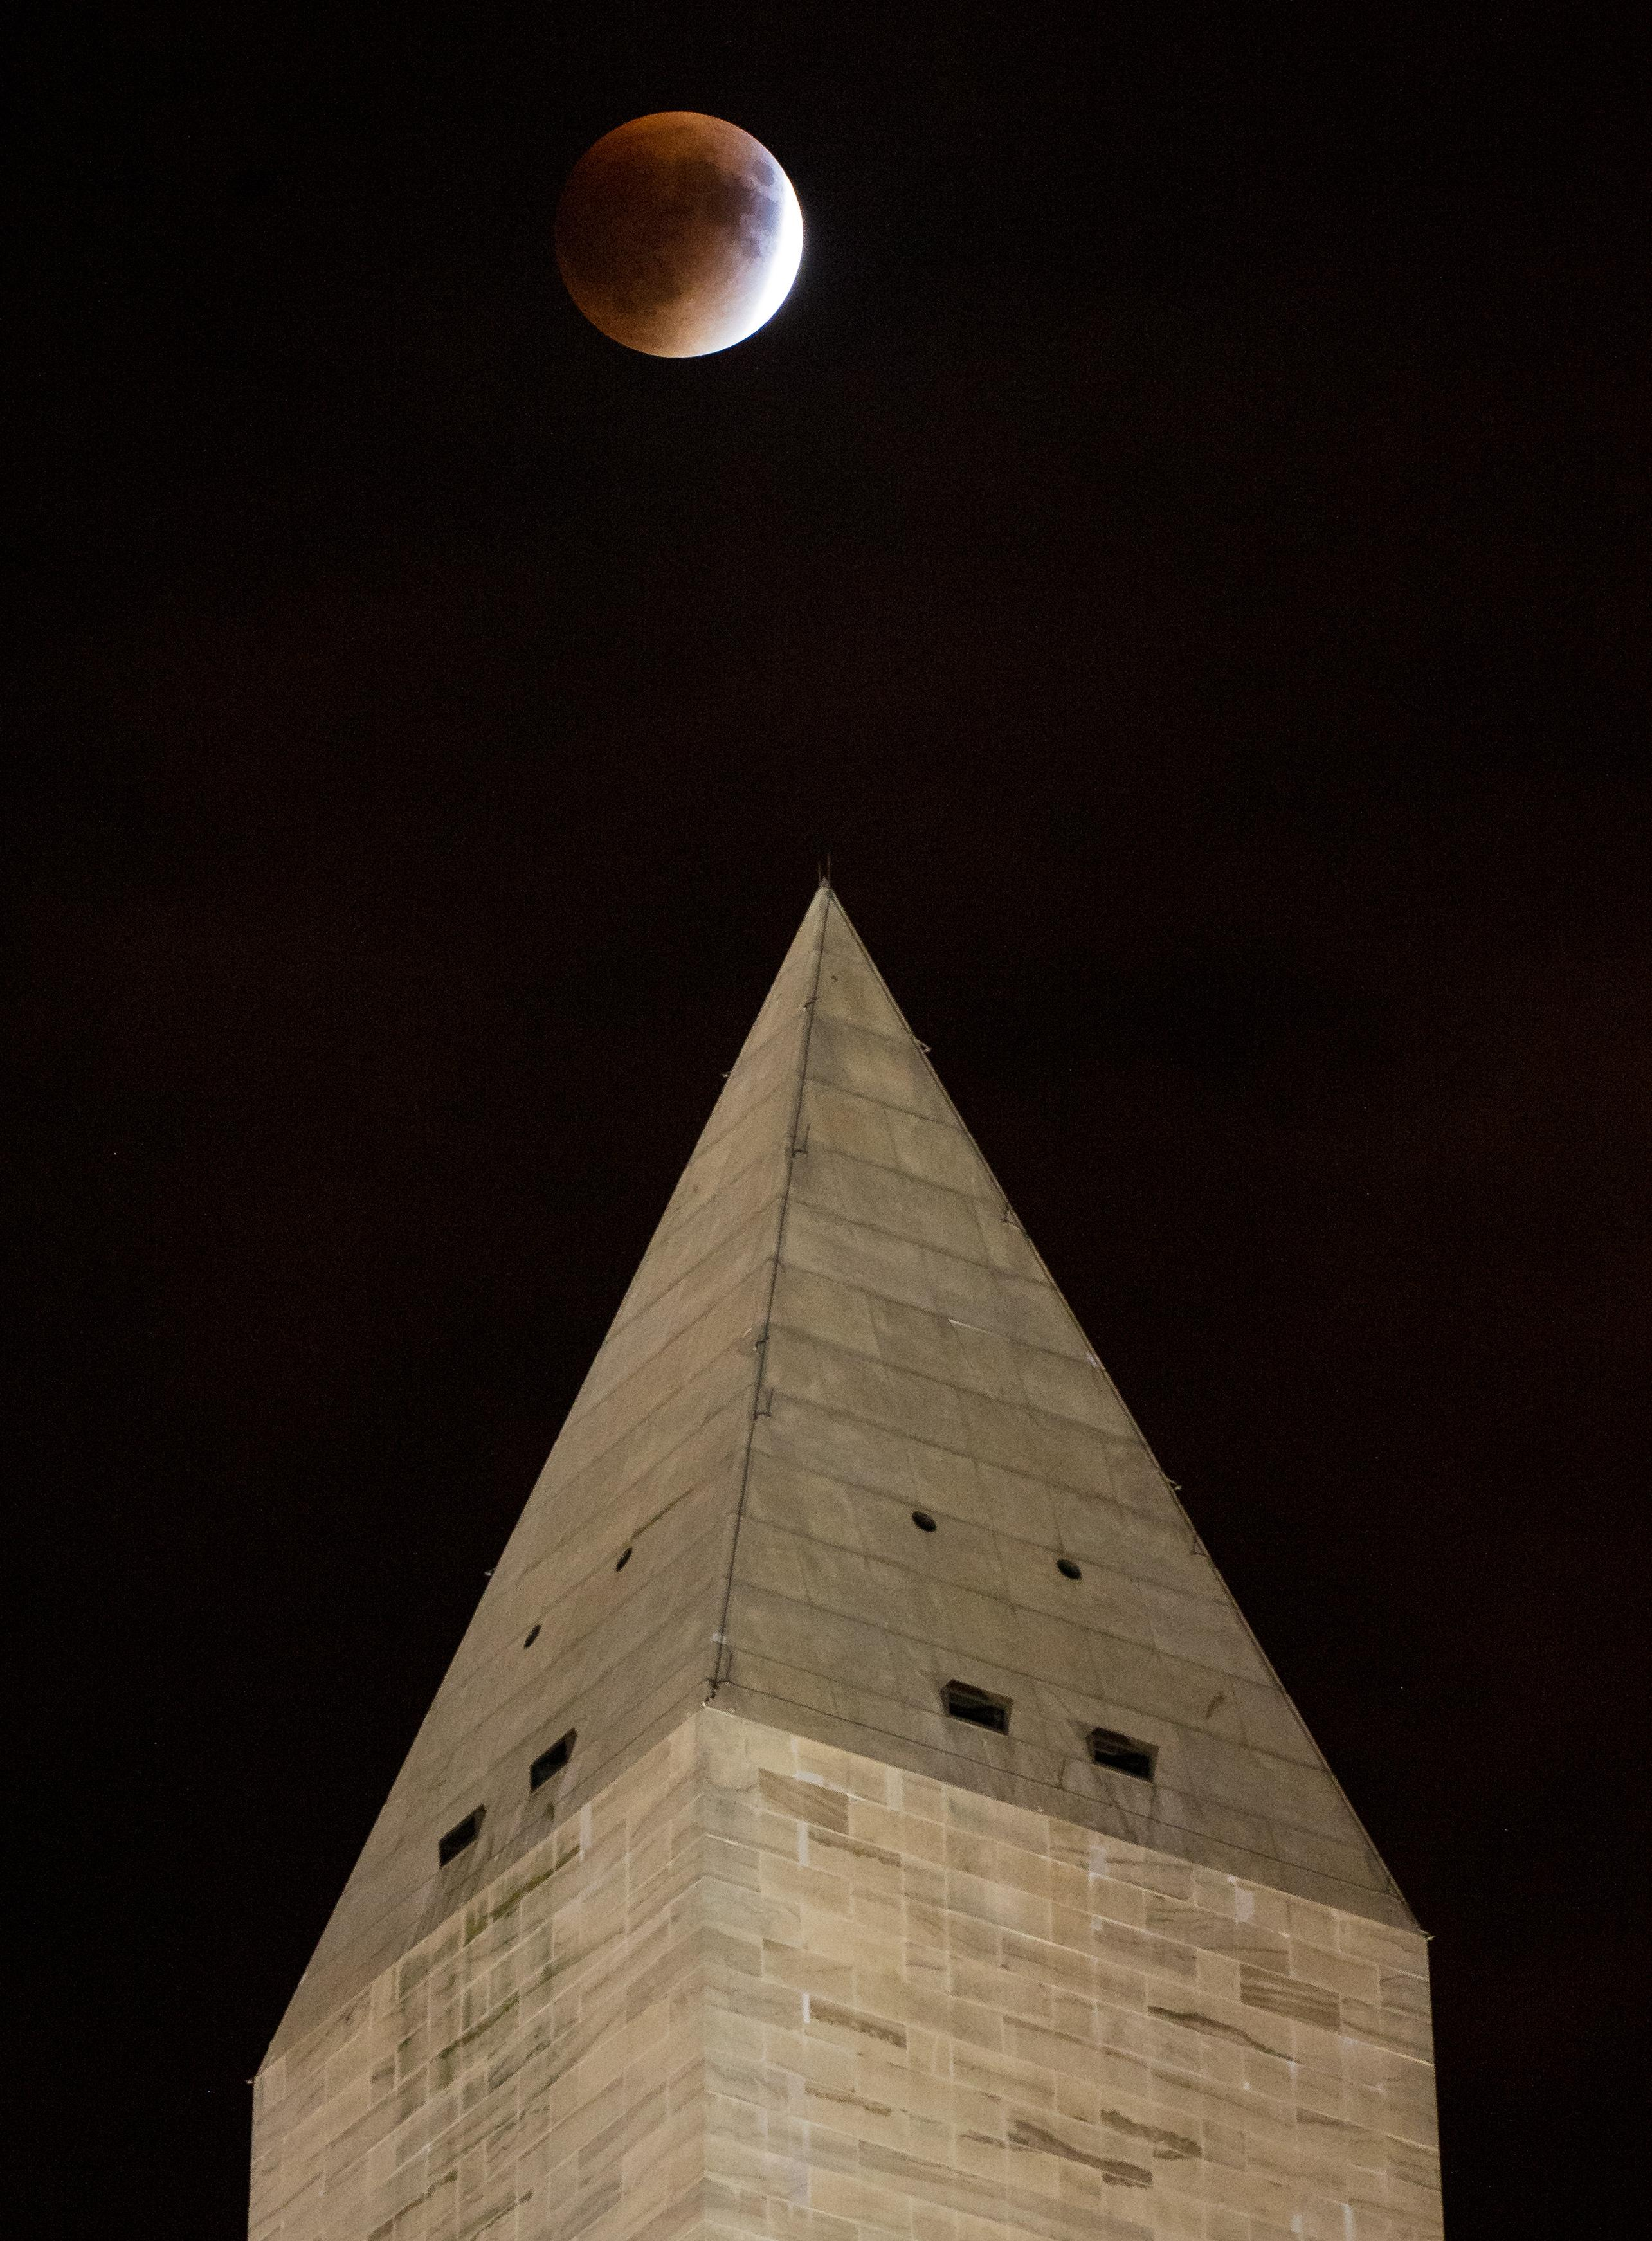 supermoon-eclipse-washington